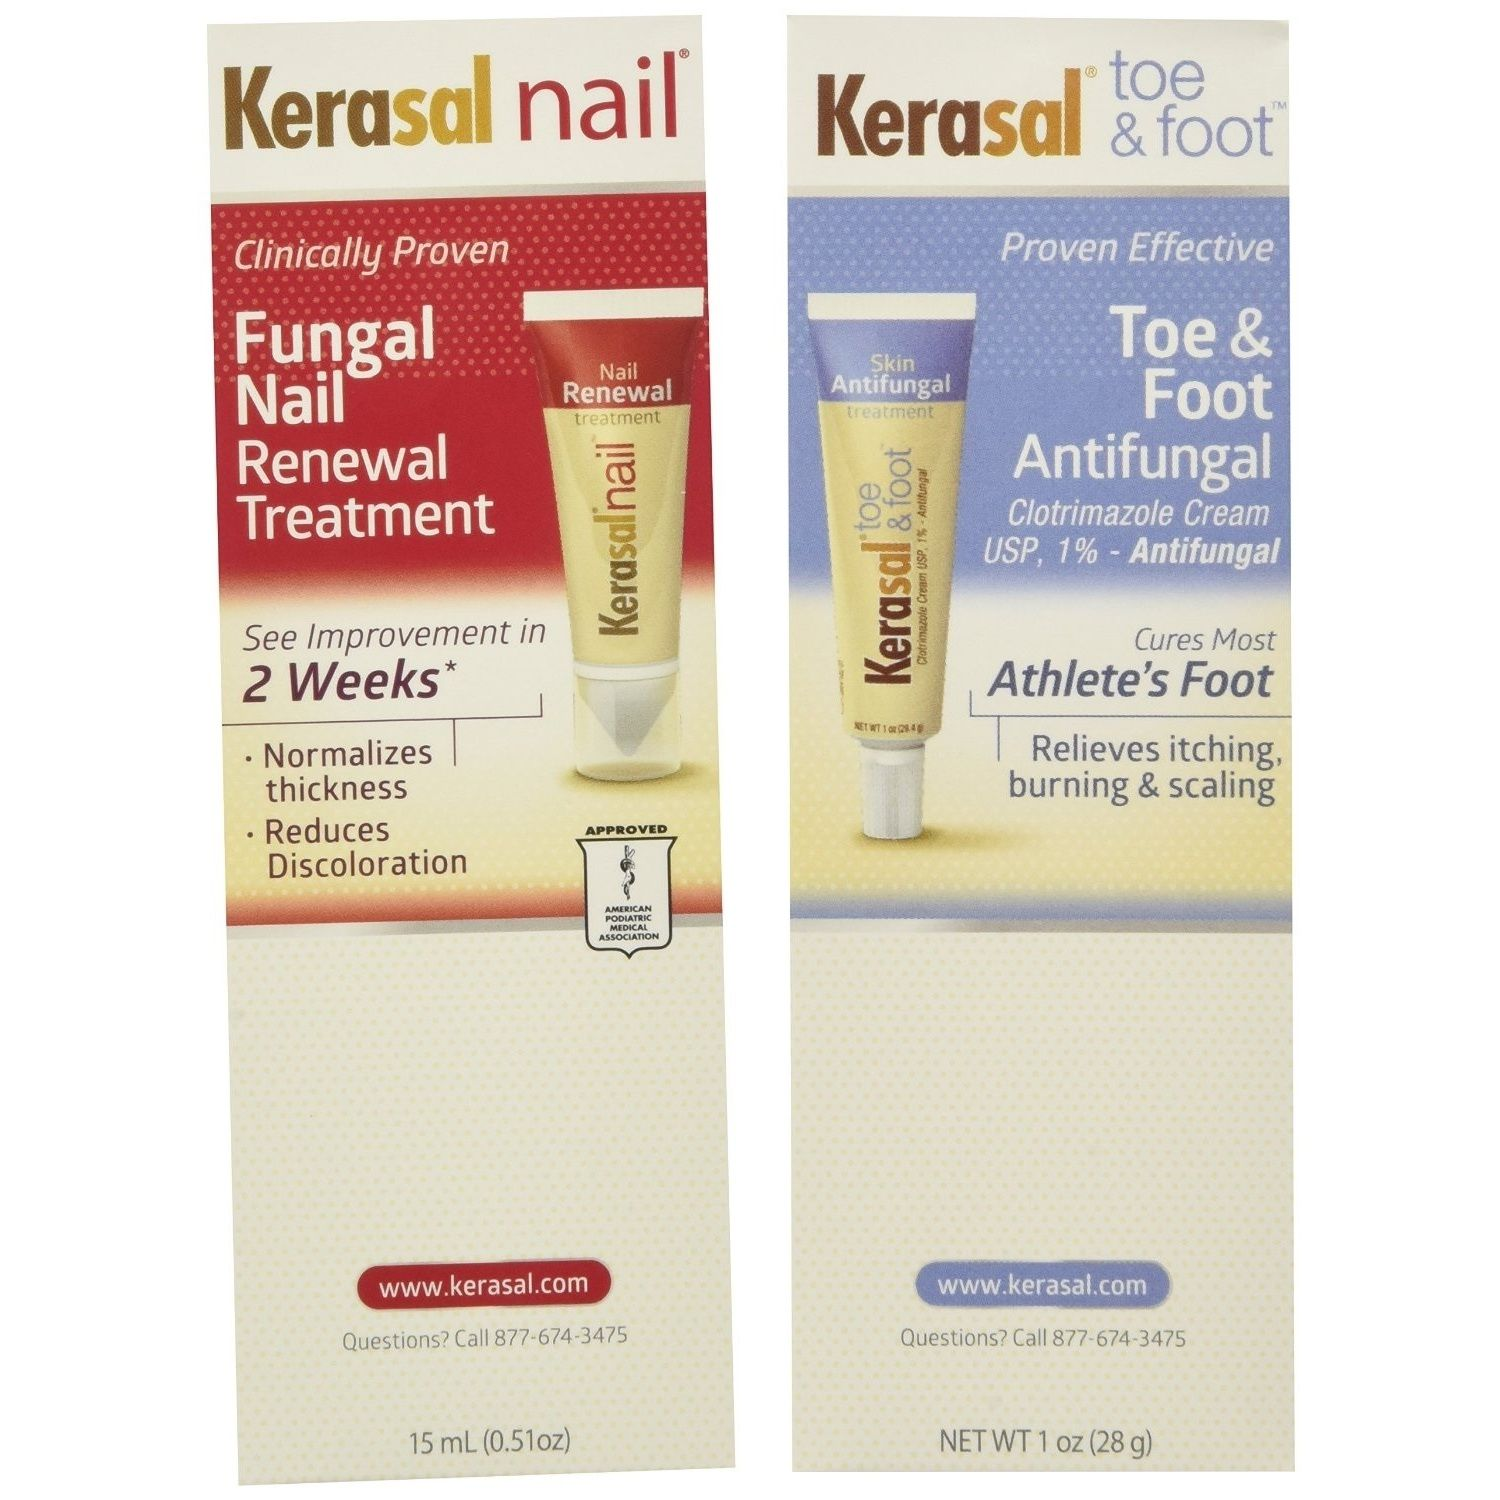 Kerasal Complete Care 2-in-1 Nail, Toe, and Foot Anti-fungal ...